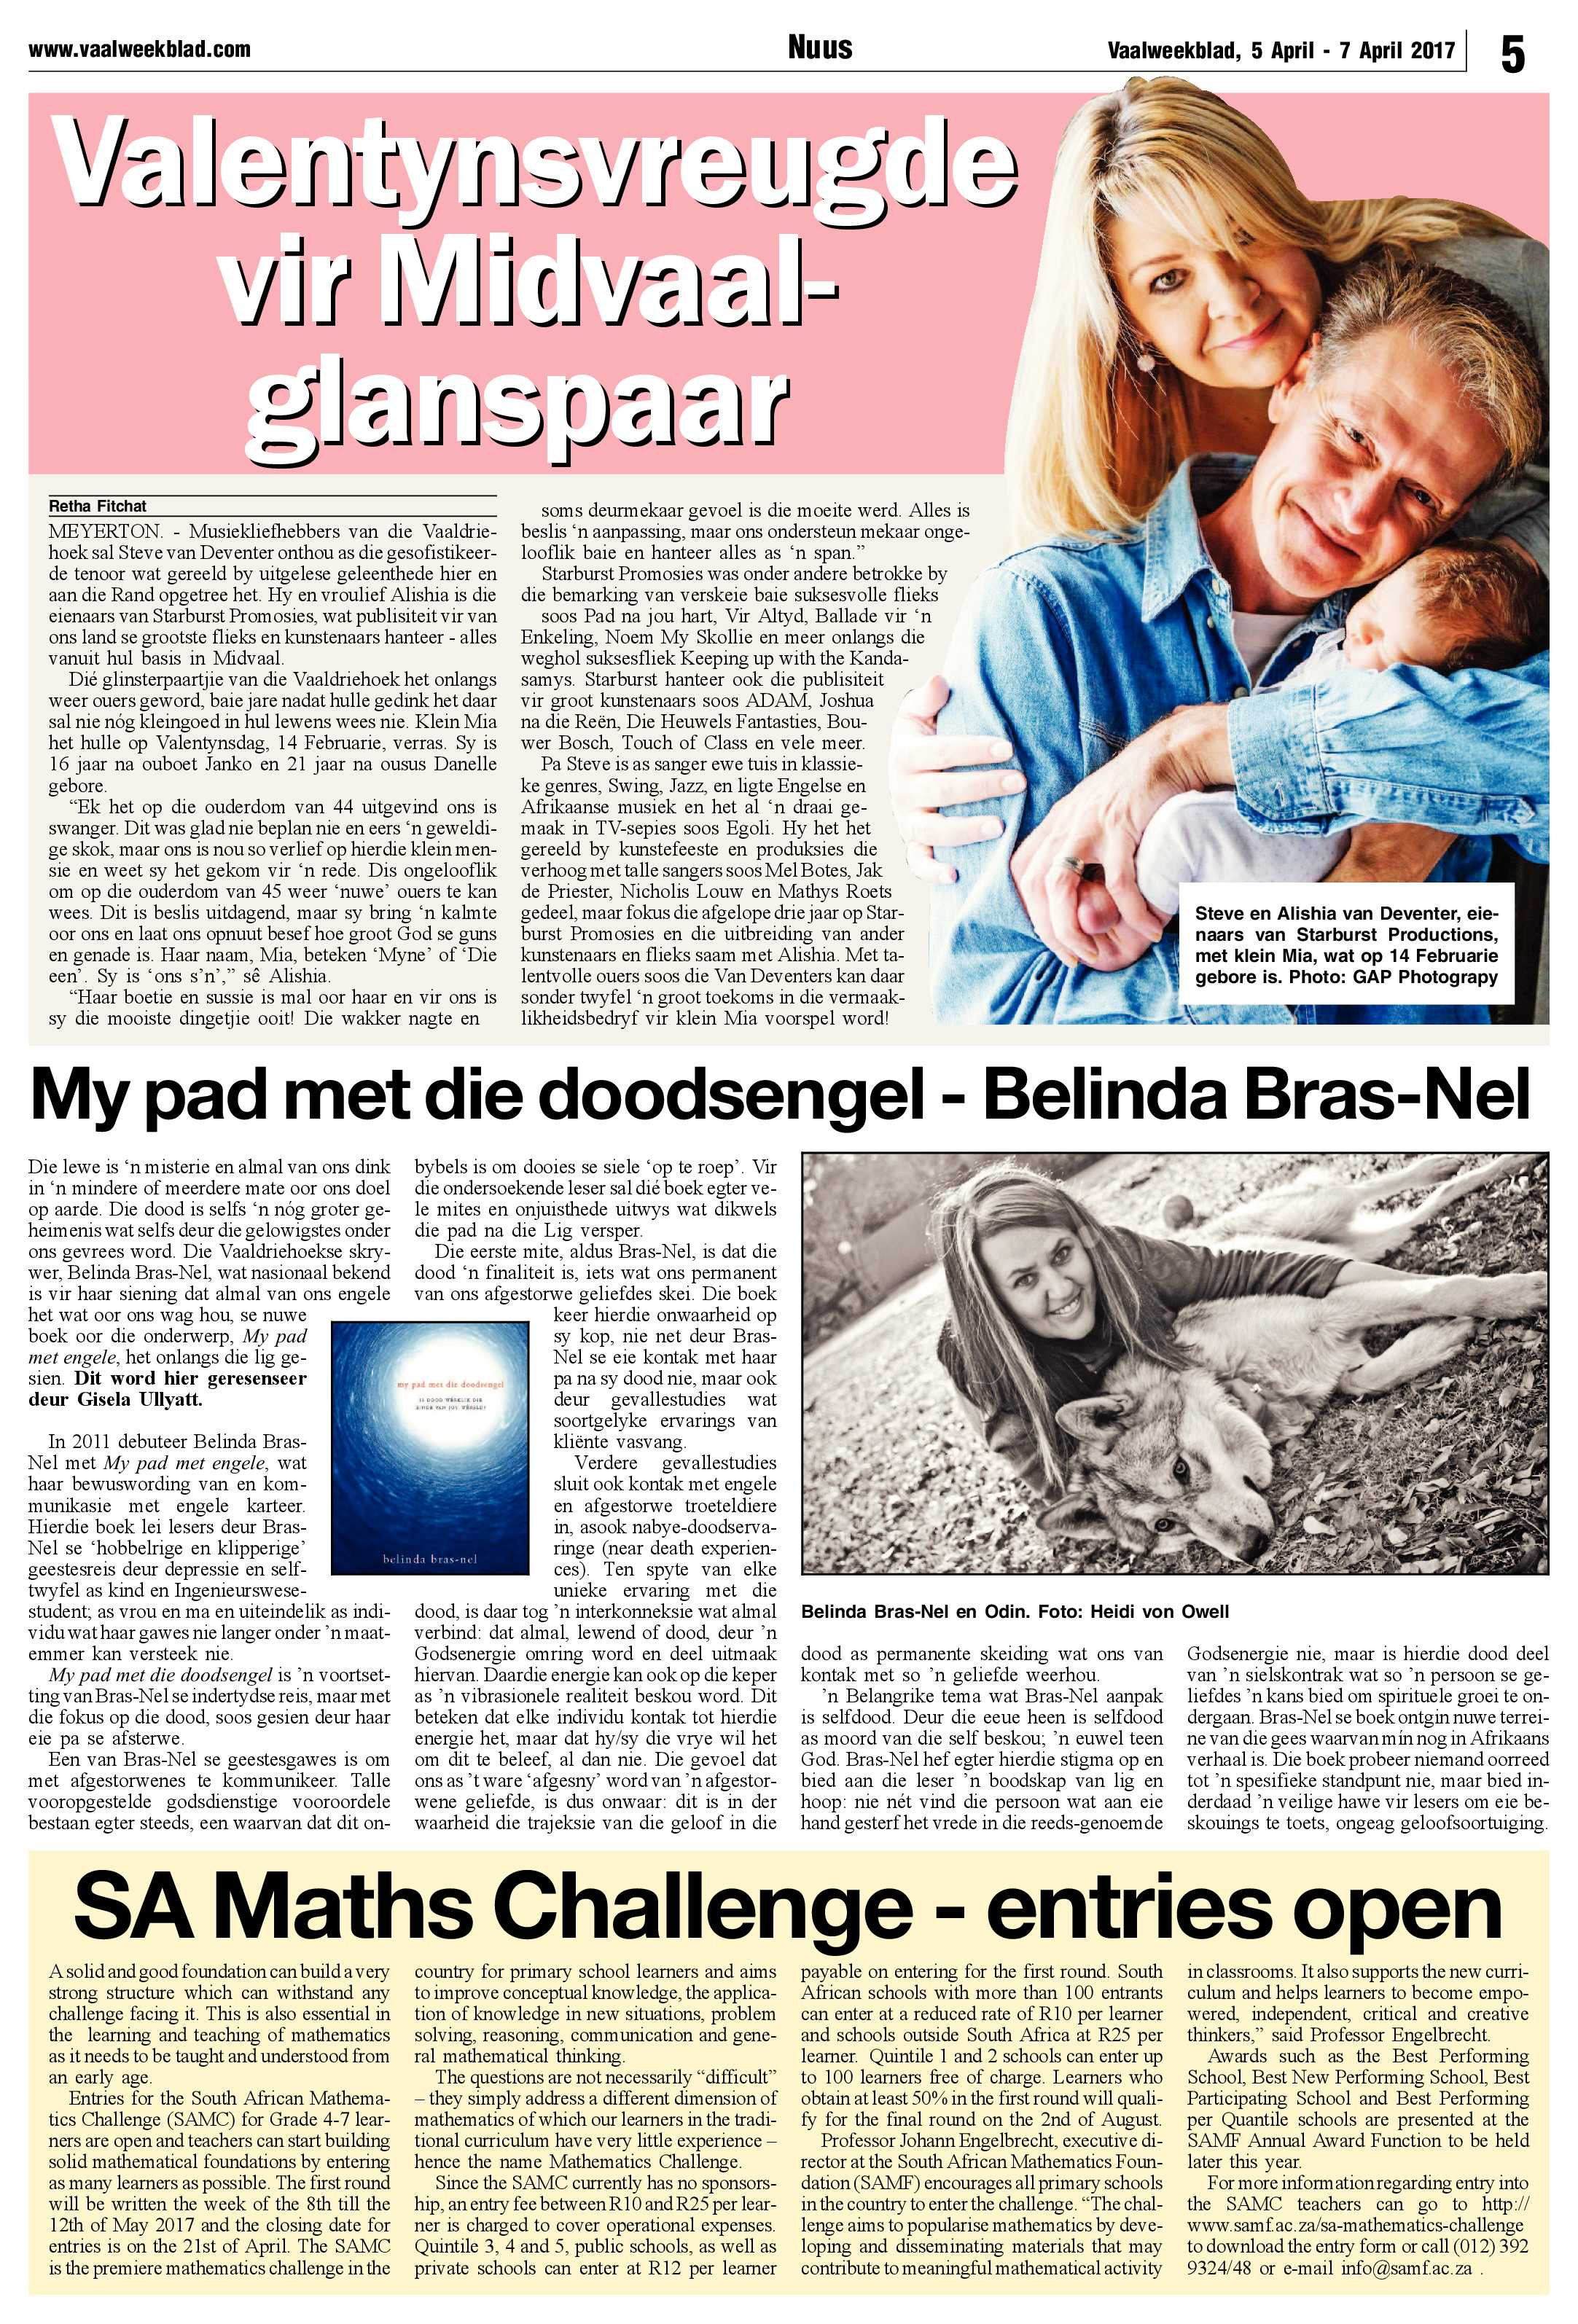 vaalweekblad-5-7-april-2017-2-epapers-page-5